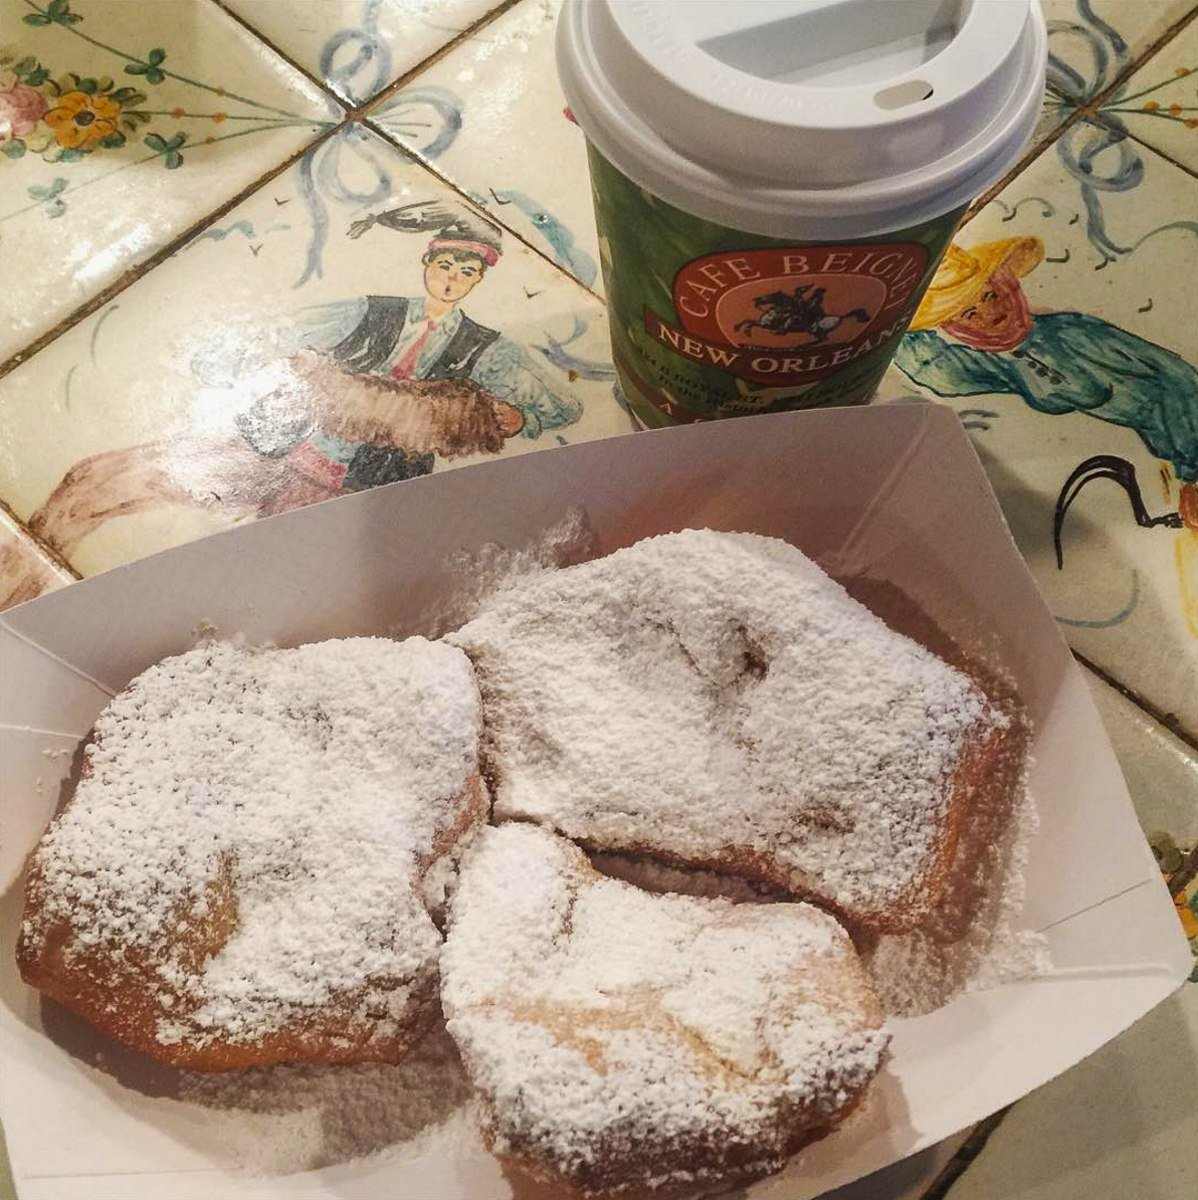 Made-to-order beignets at Cafe Beignet